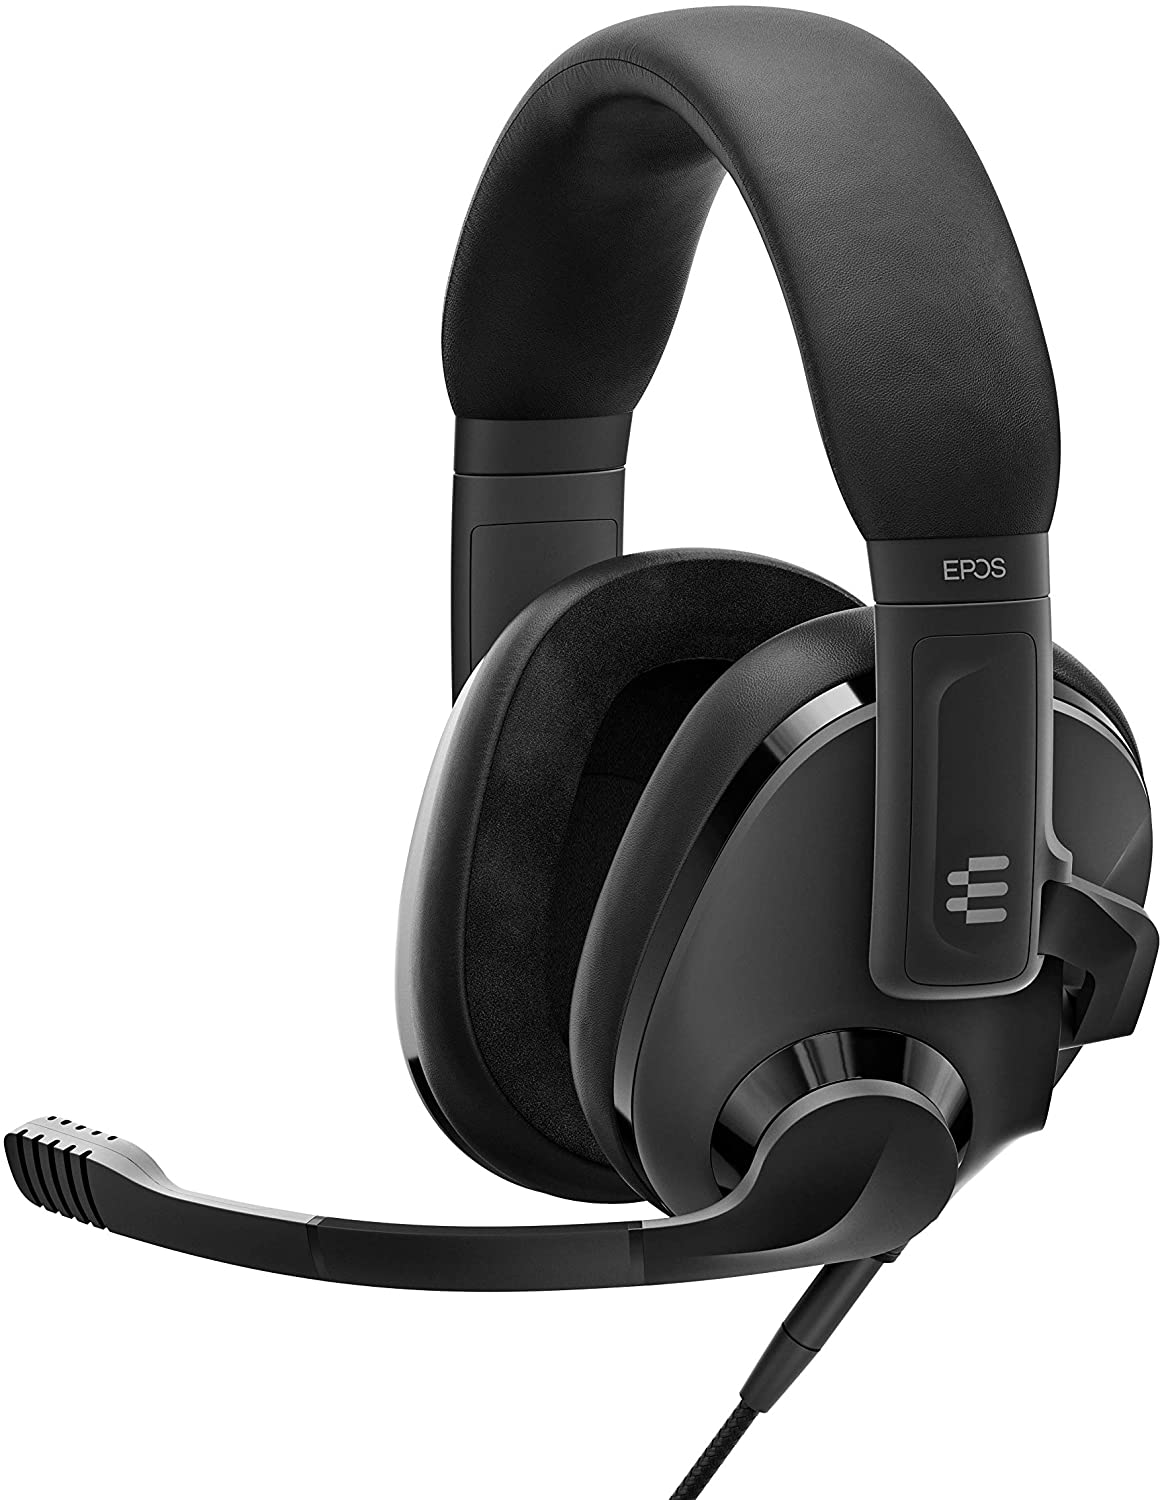 H3 EPOS Closed Acoustic Gaming Headset Review